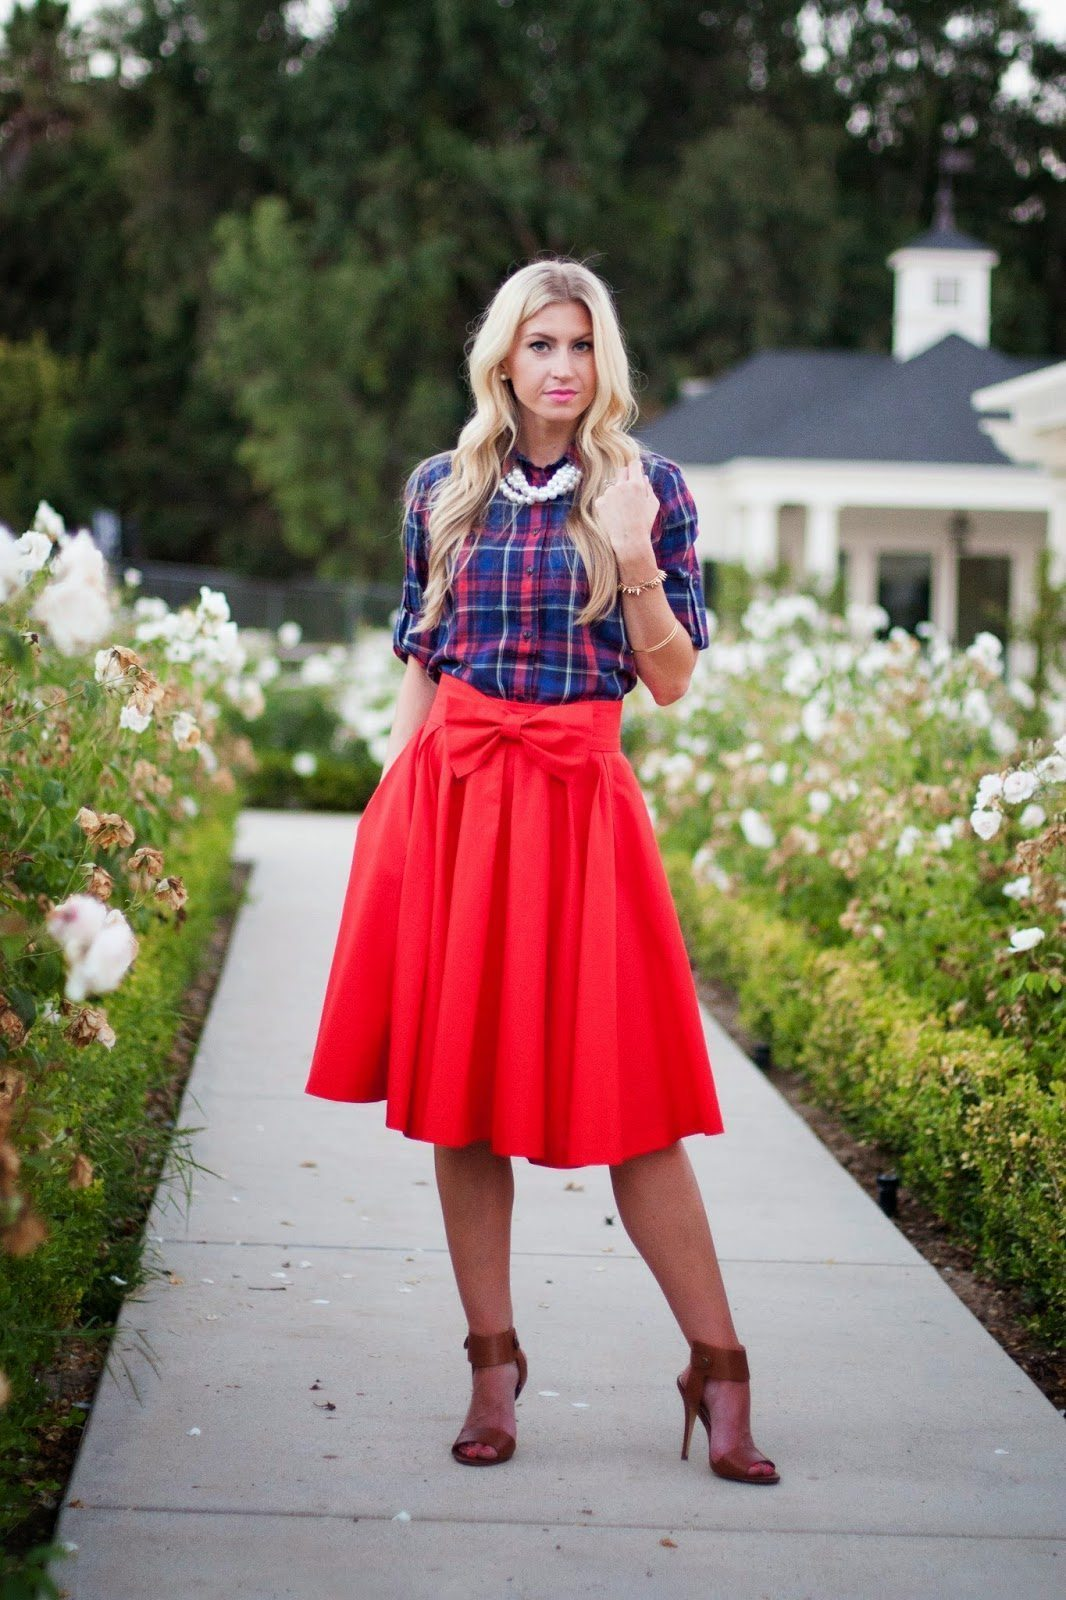 POPPY TAKE A BOW SKIRT: NOW AVAILABLE